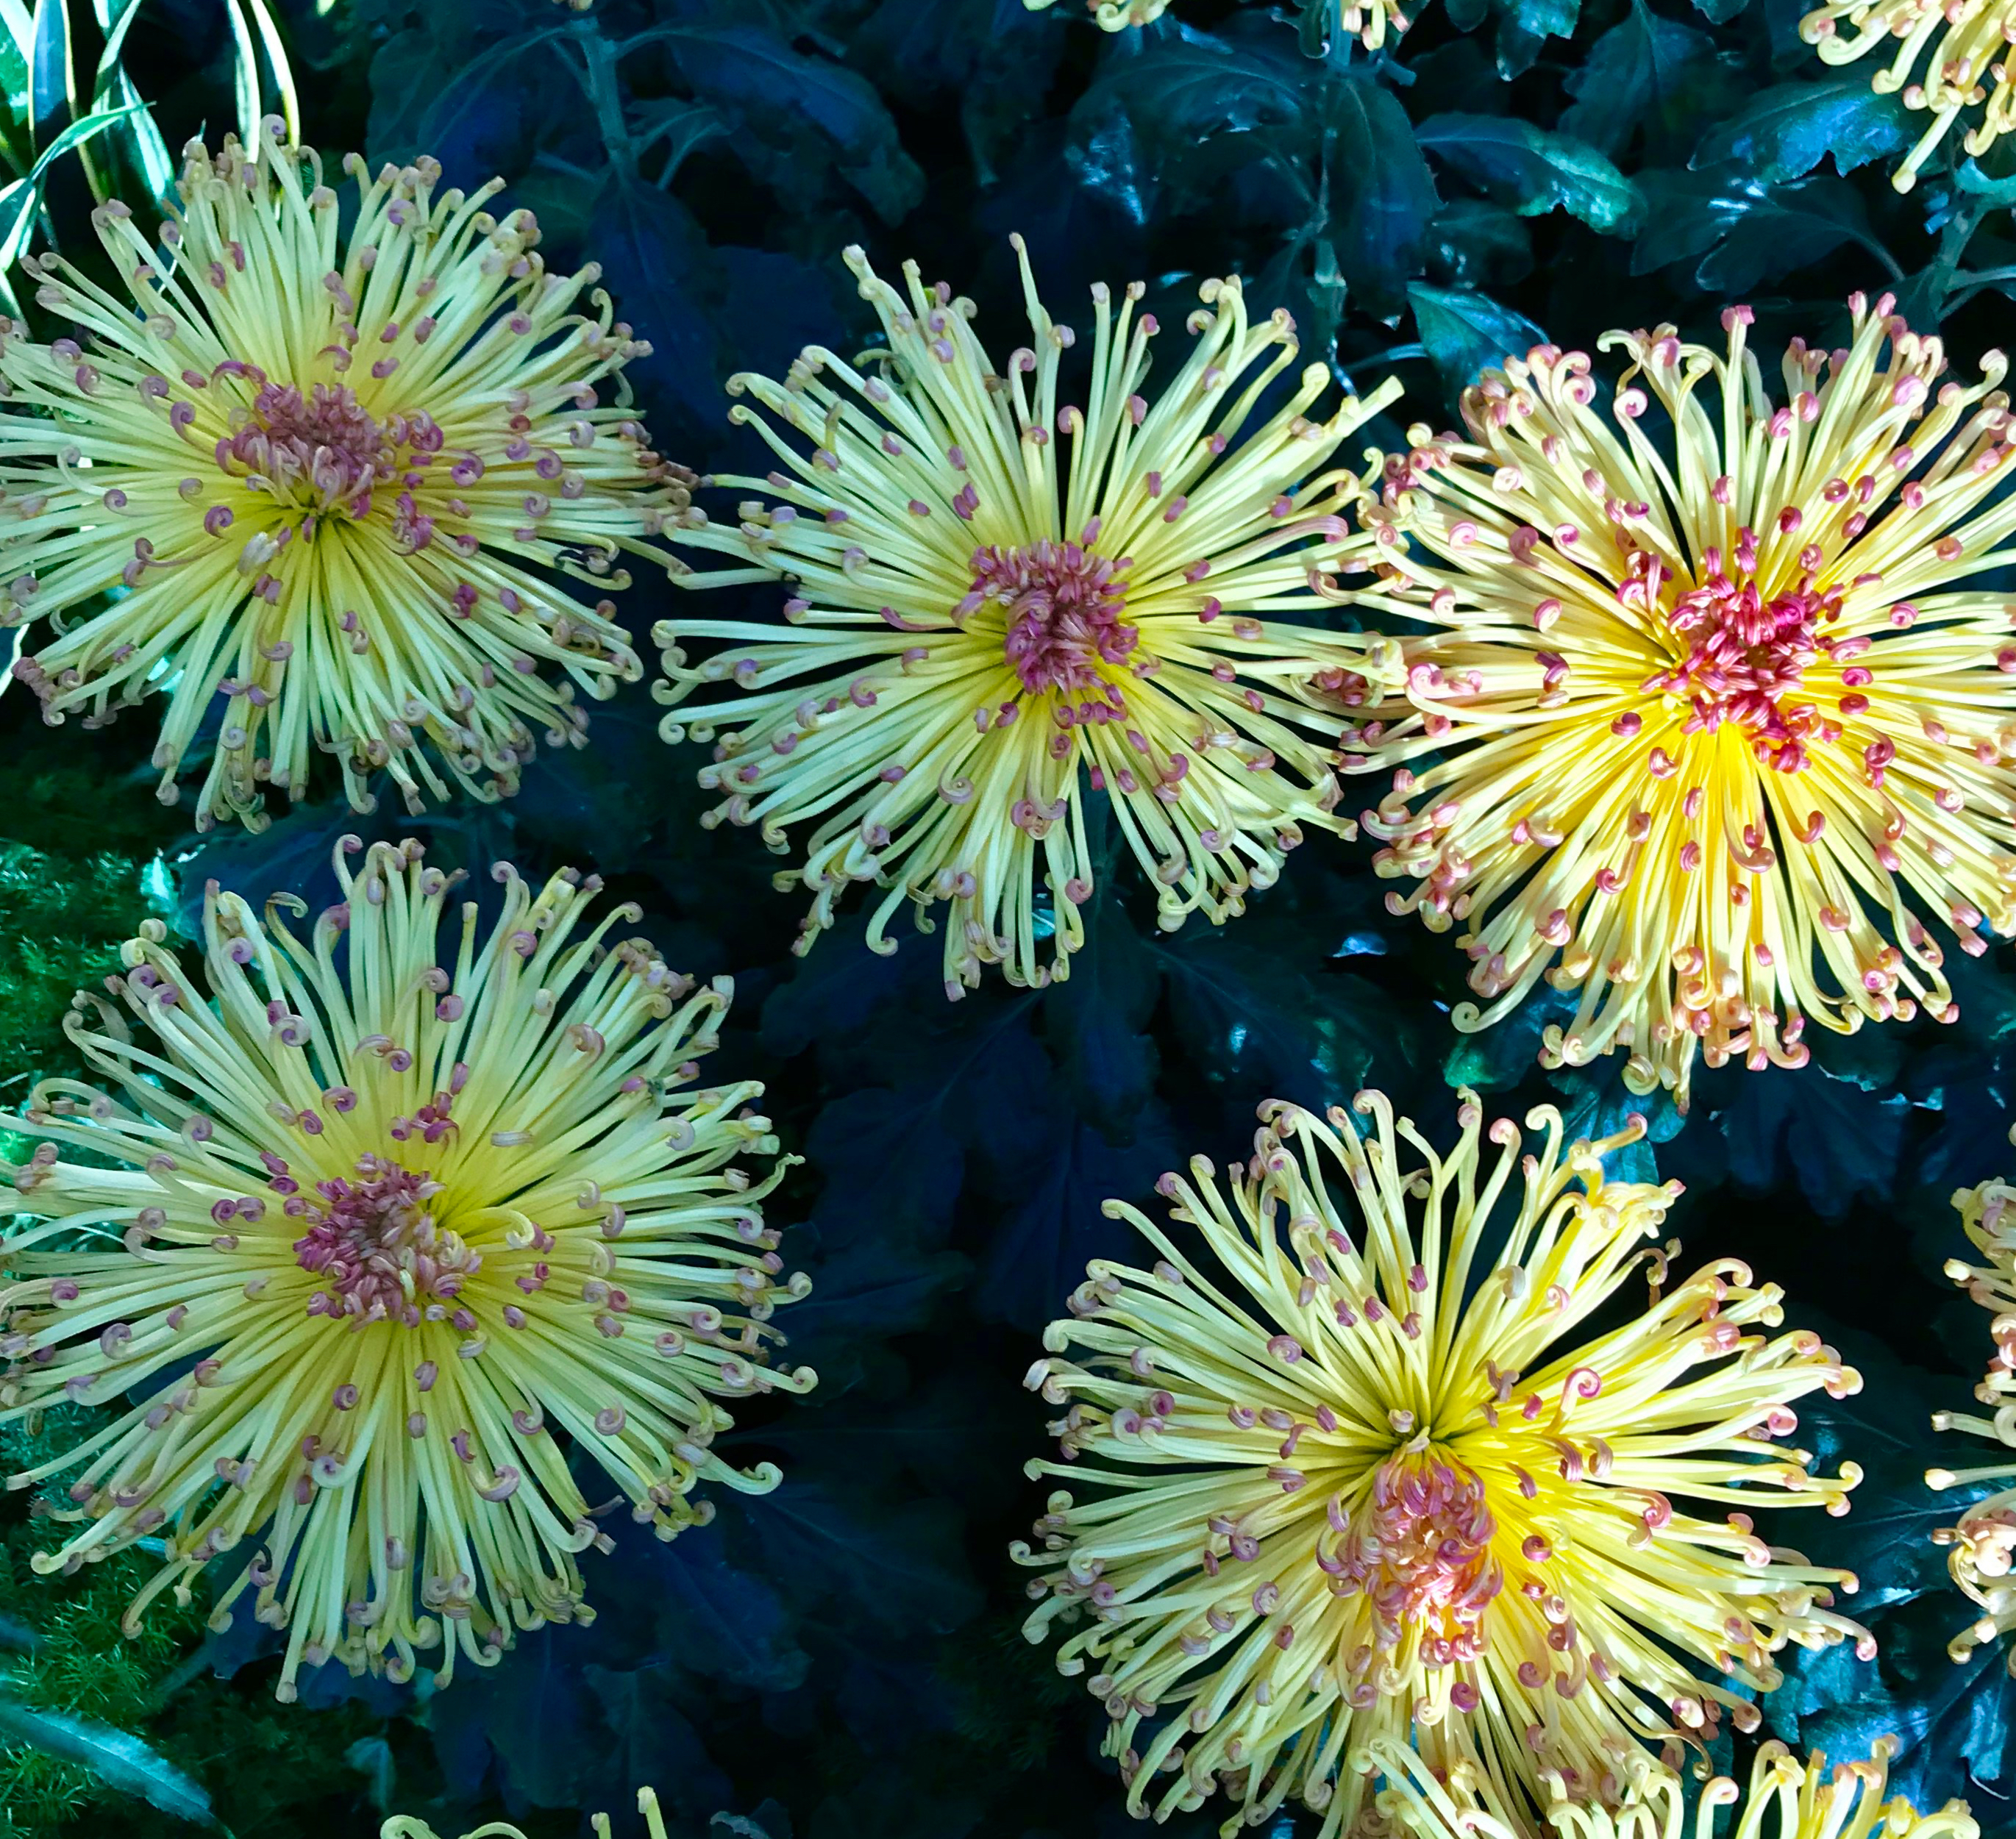 Bed of Spider Chrysanthemums